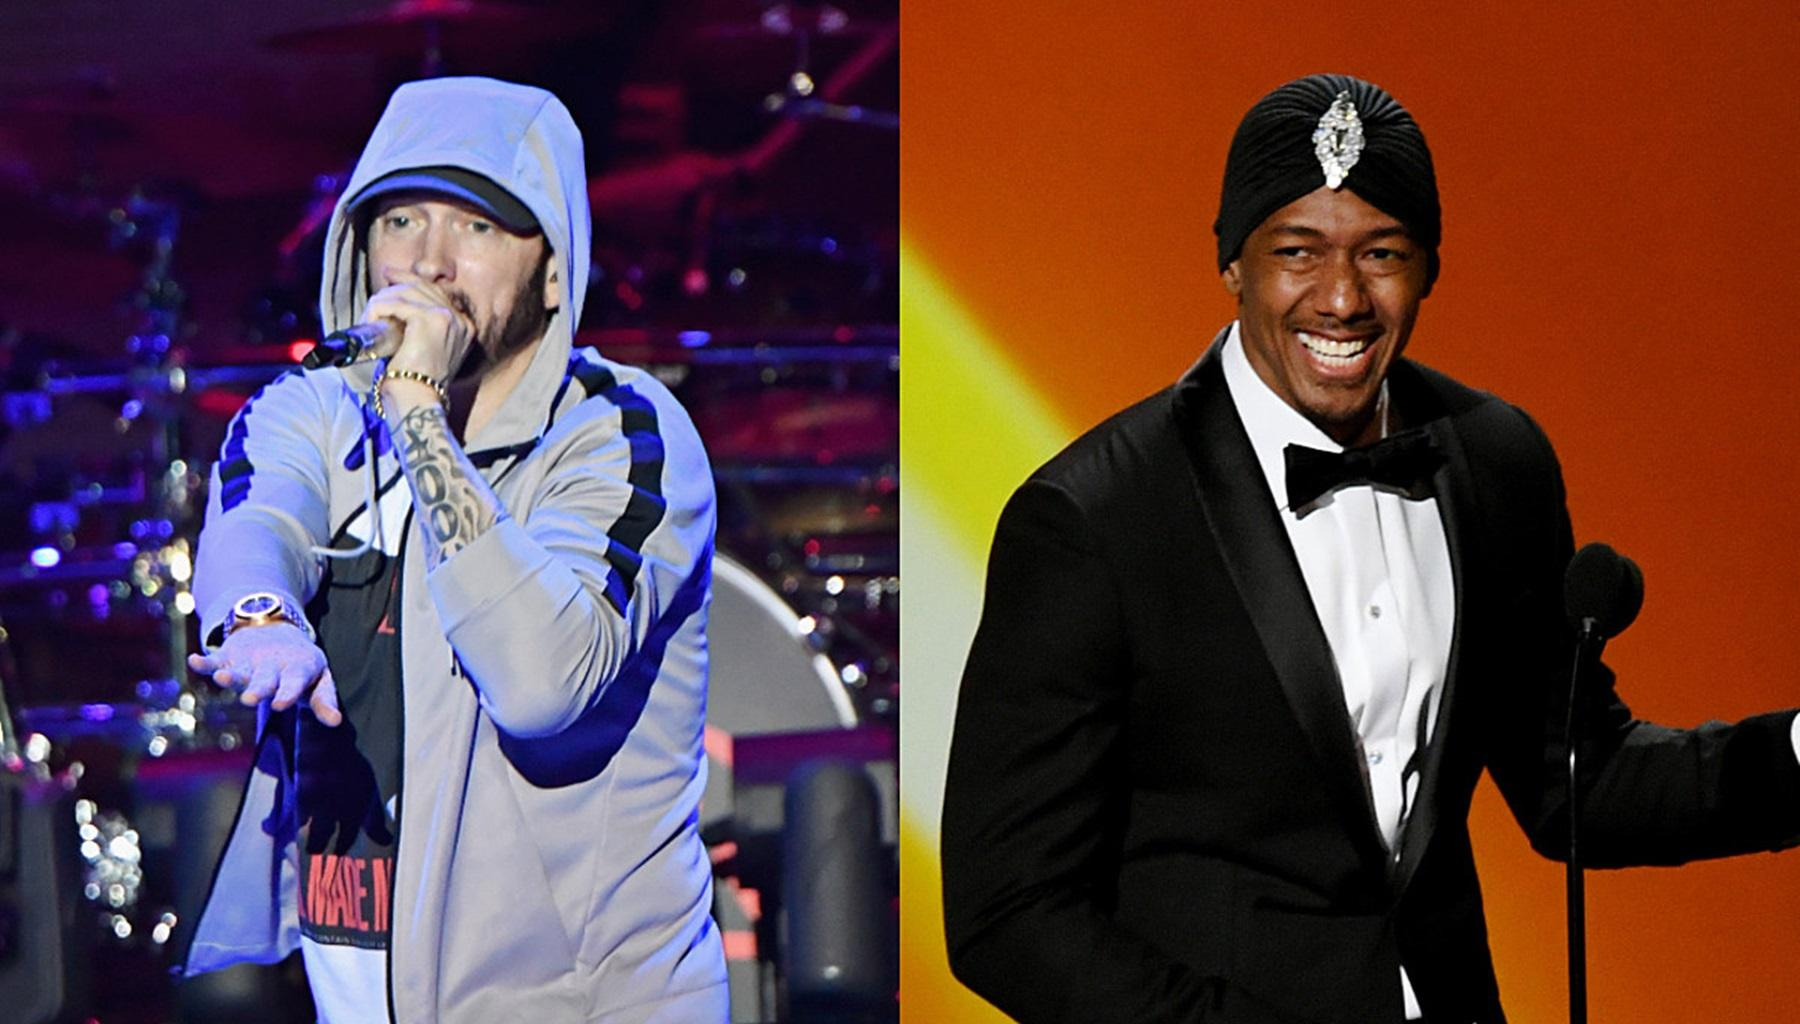 Nick Cannon's Deep Love For Mariah Carey Will Push Him To Keep Fighting With Eminem